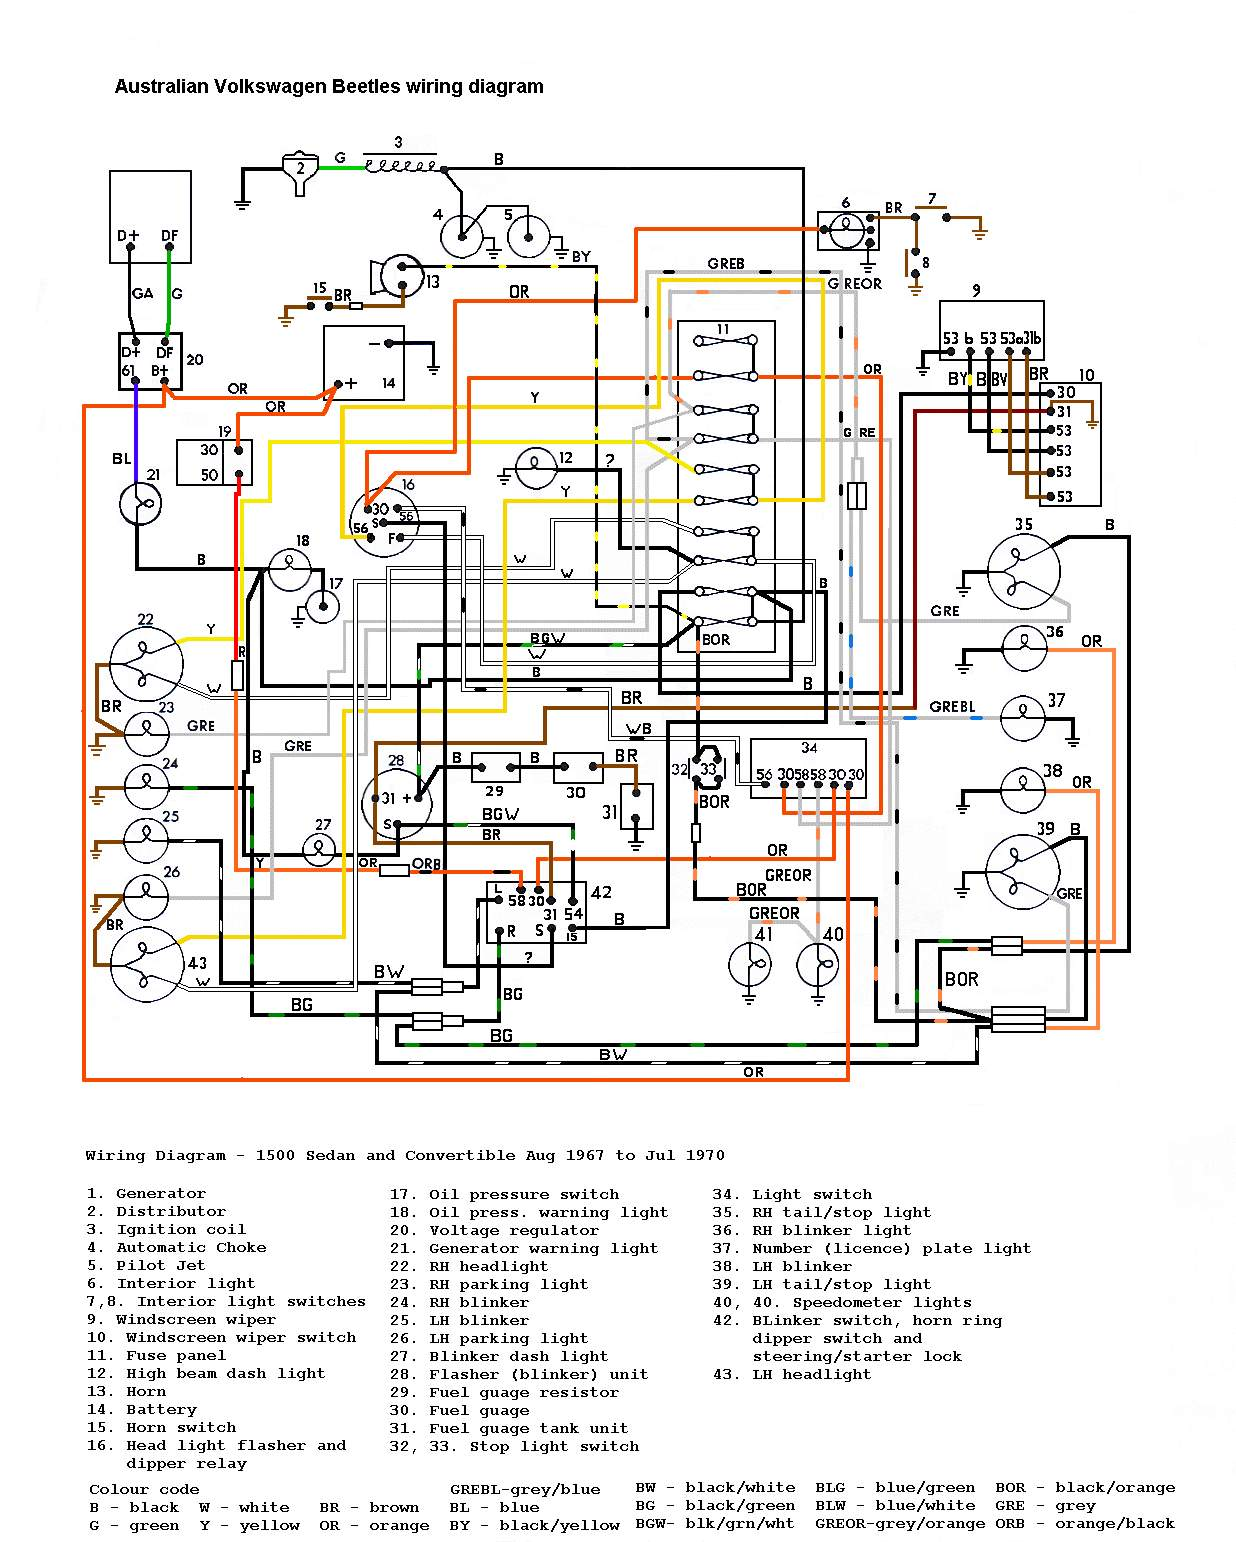 Vw Rabbit Wiring Diagram Worksheet And Fuse 77 Van Layout Diagrams U2022 Rh Laurafinlay Co Uk 1980 1981